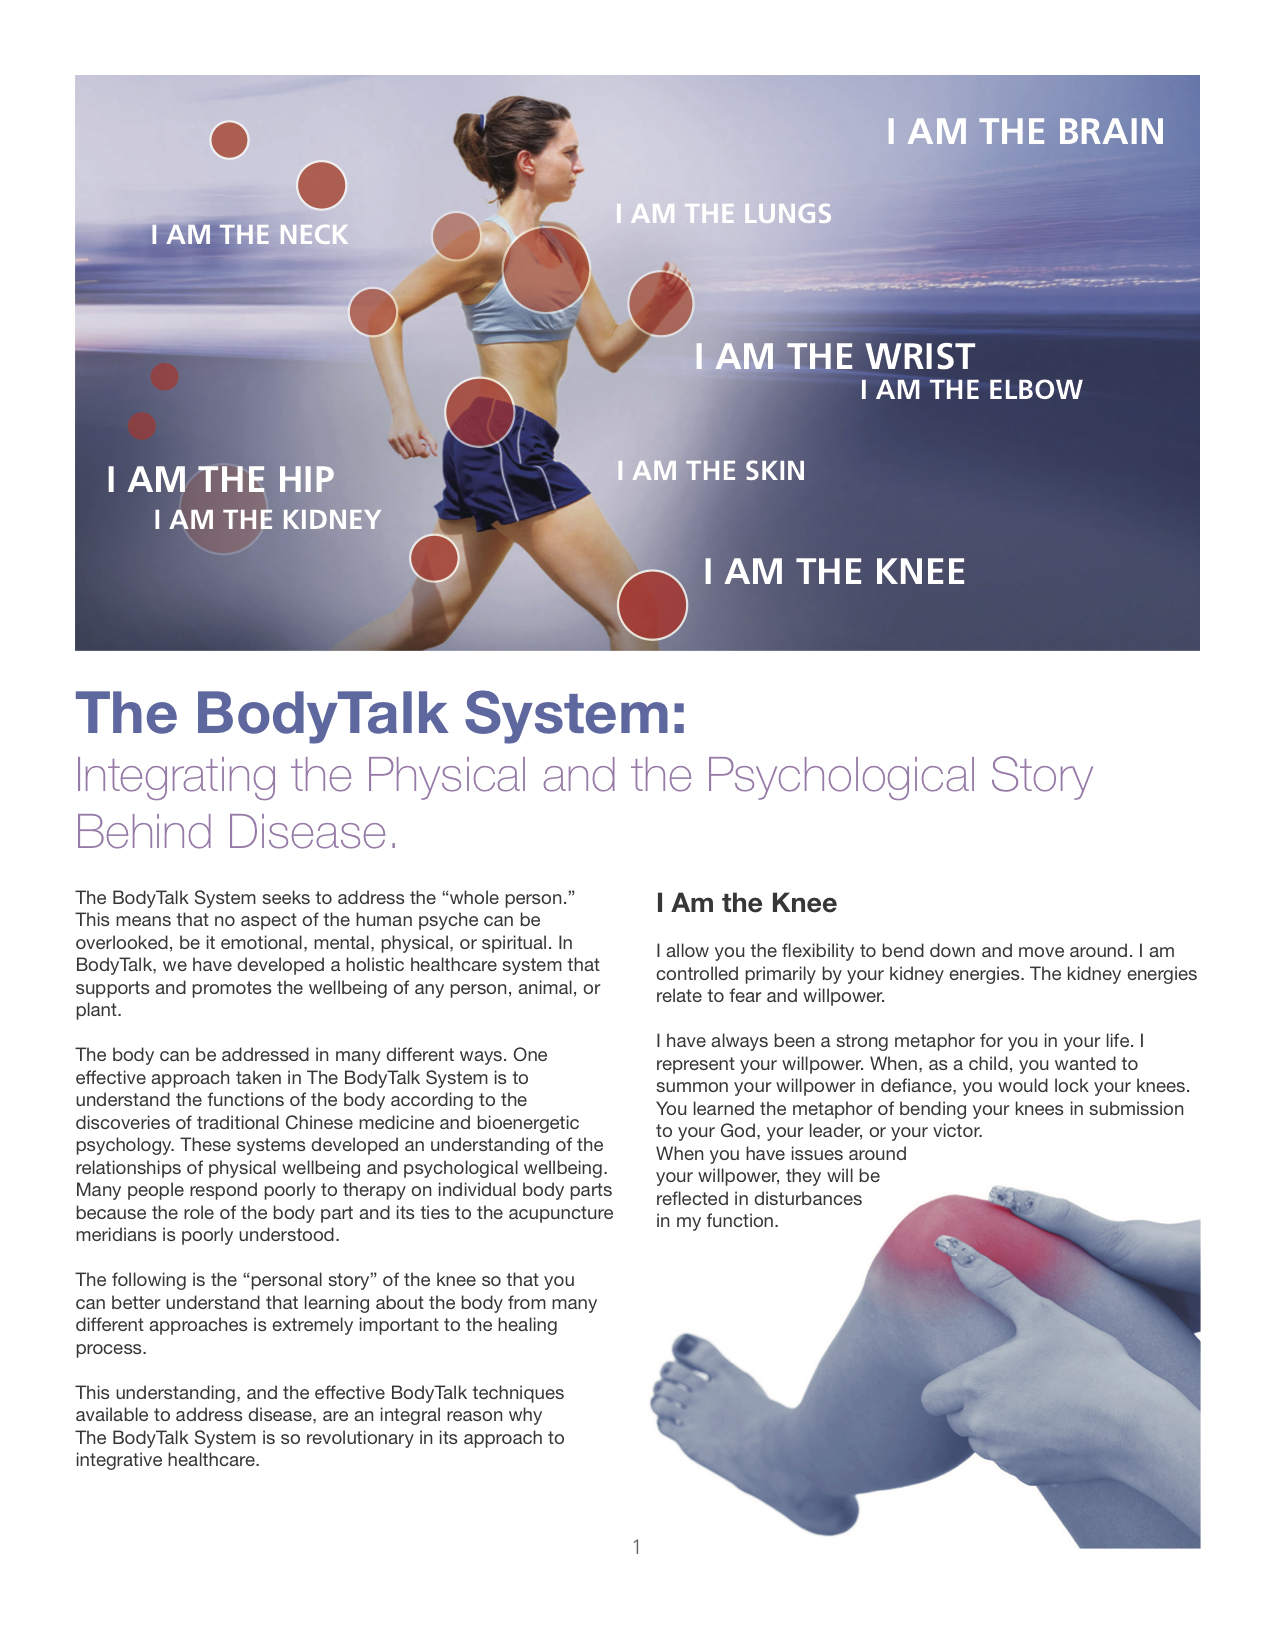 5 Integrating the Physical and Psychological.jpg